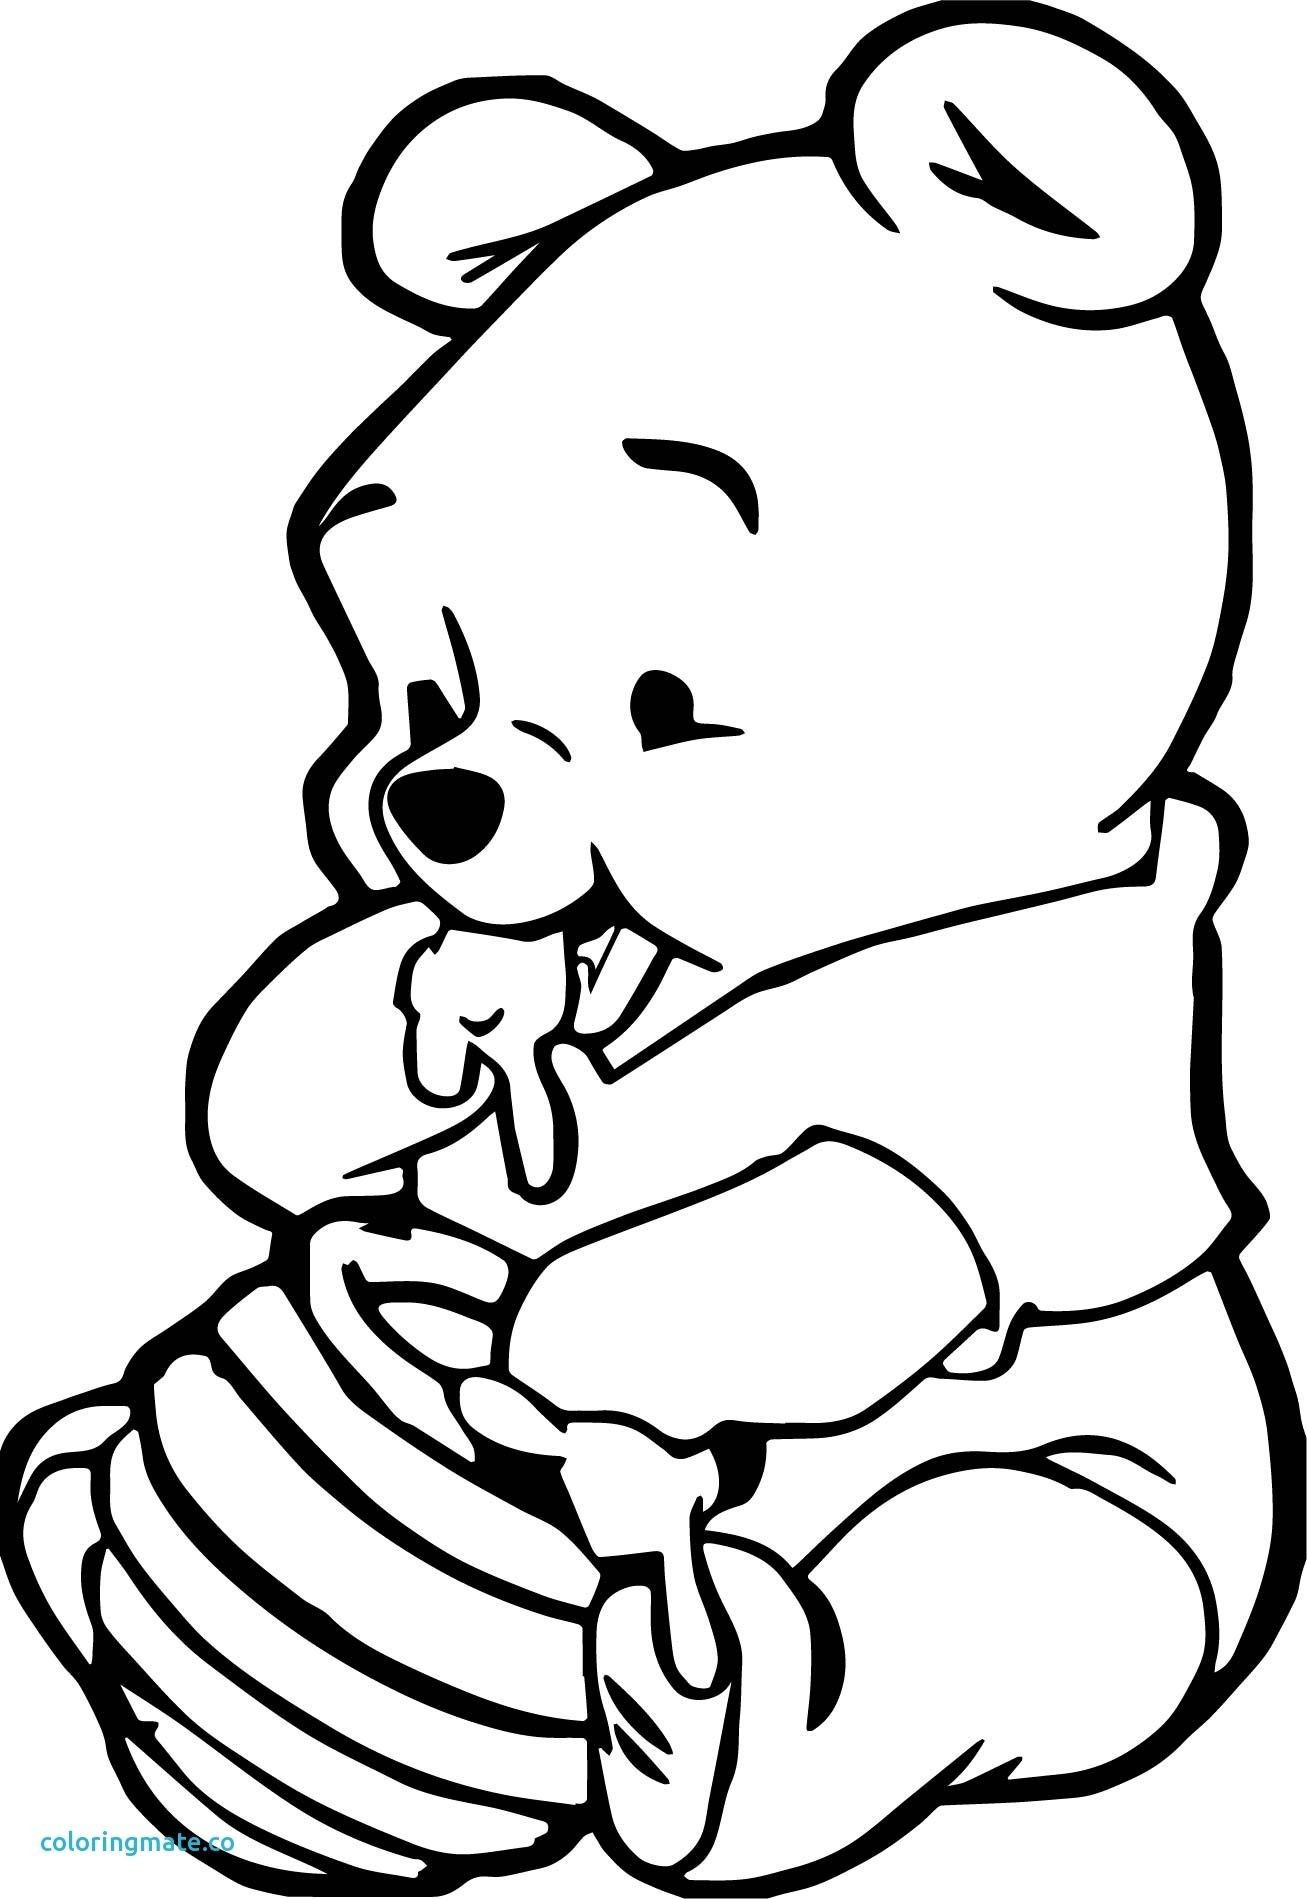 1307x1899 Tigger And Pooh Coloring Pages With Heart